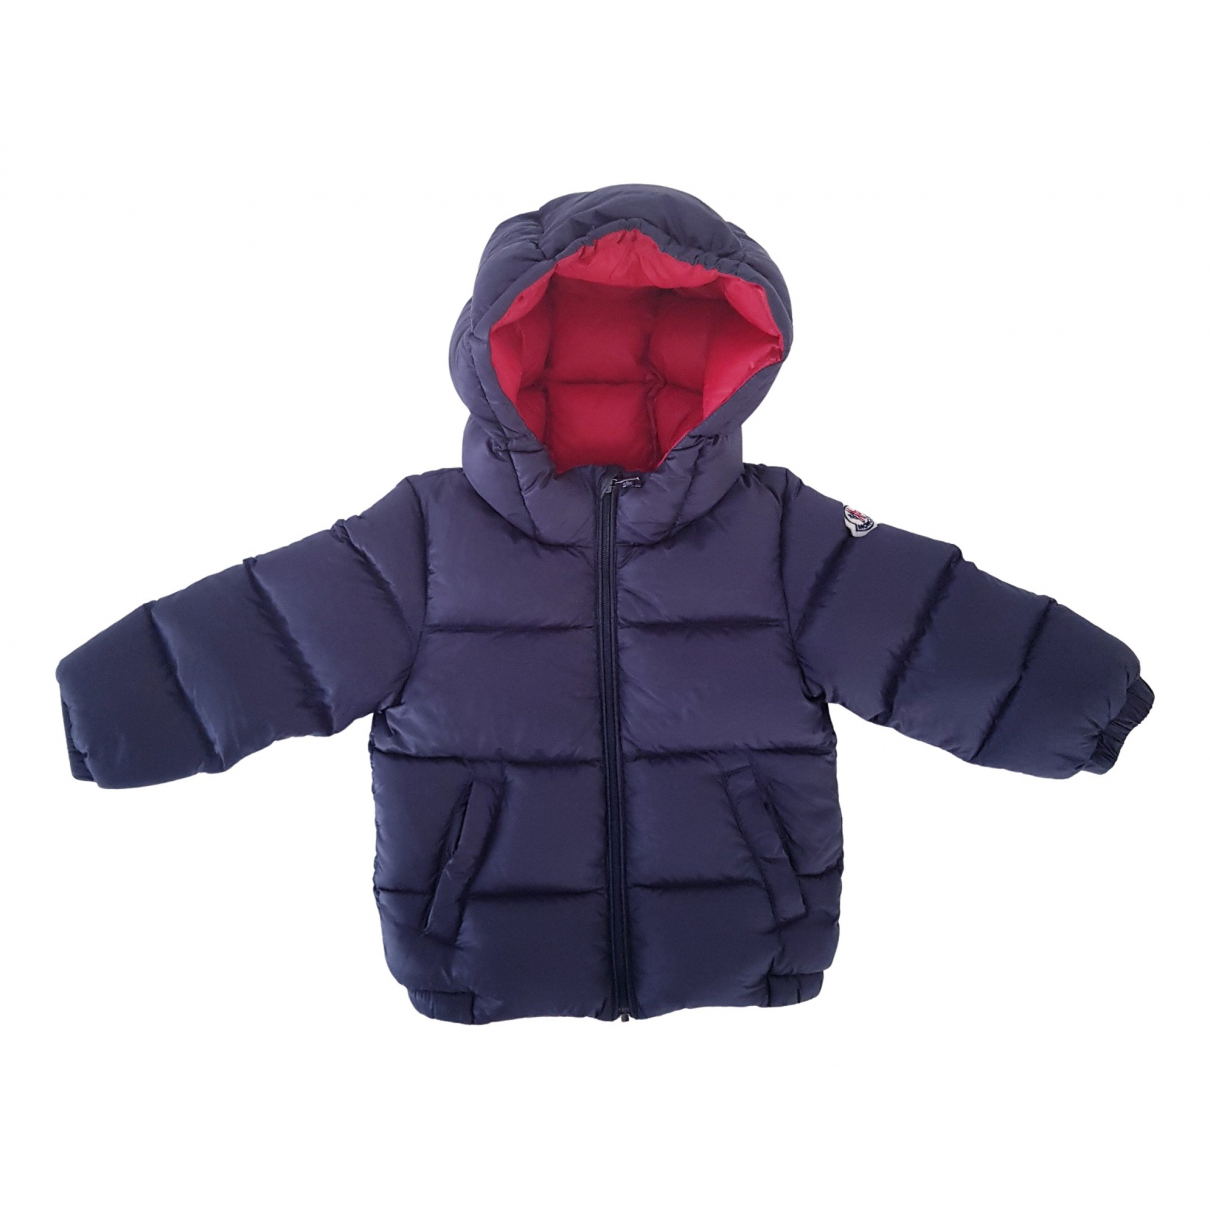 Moncler Classic Blue jacket & coat for Kids 18 months - up to 81cm FR